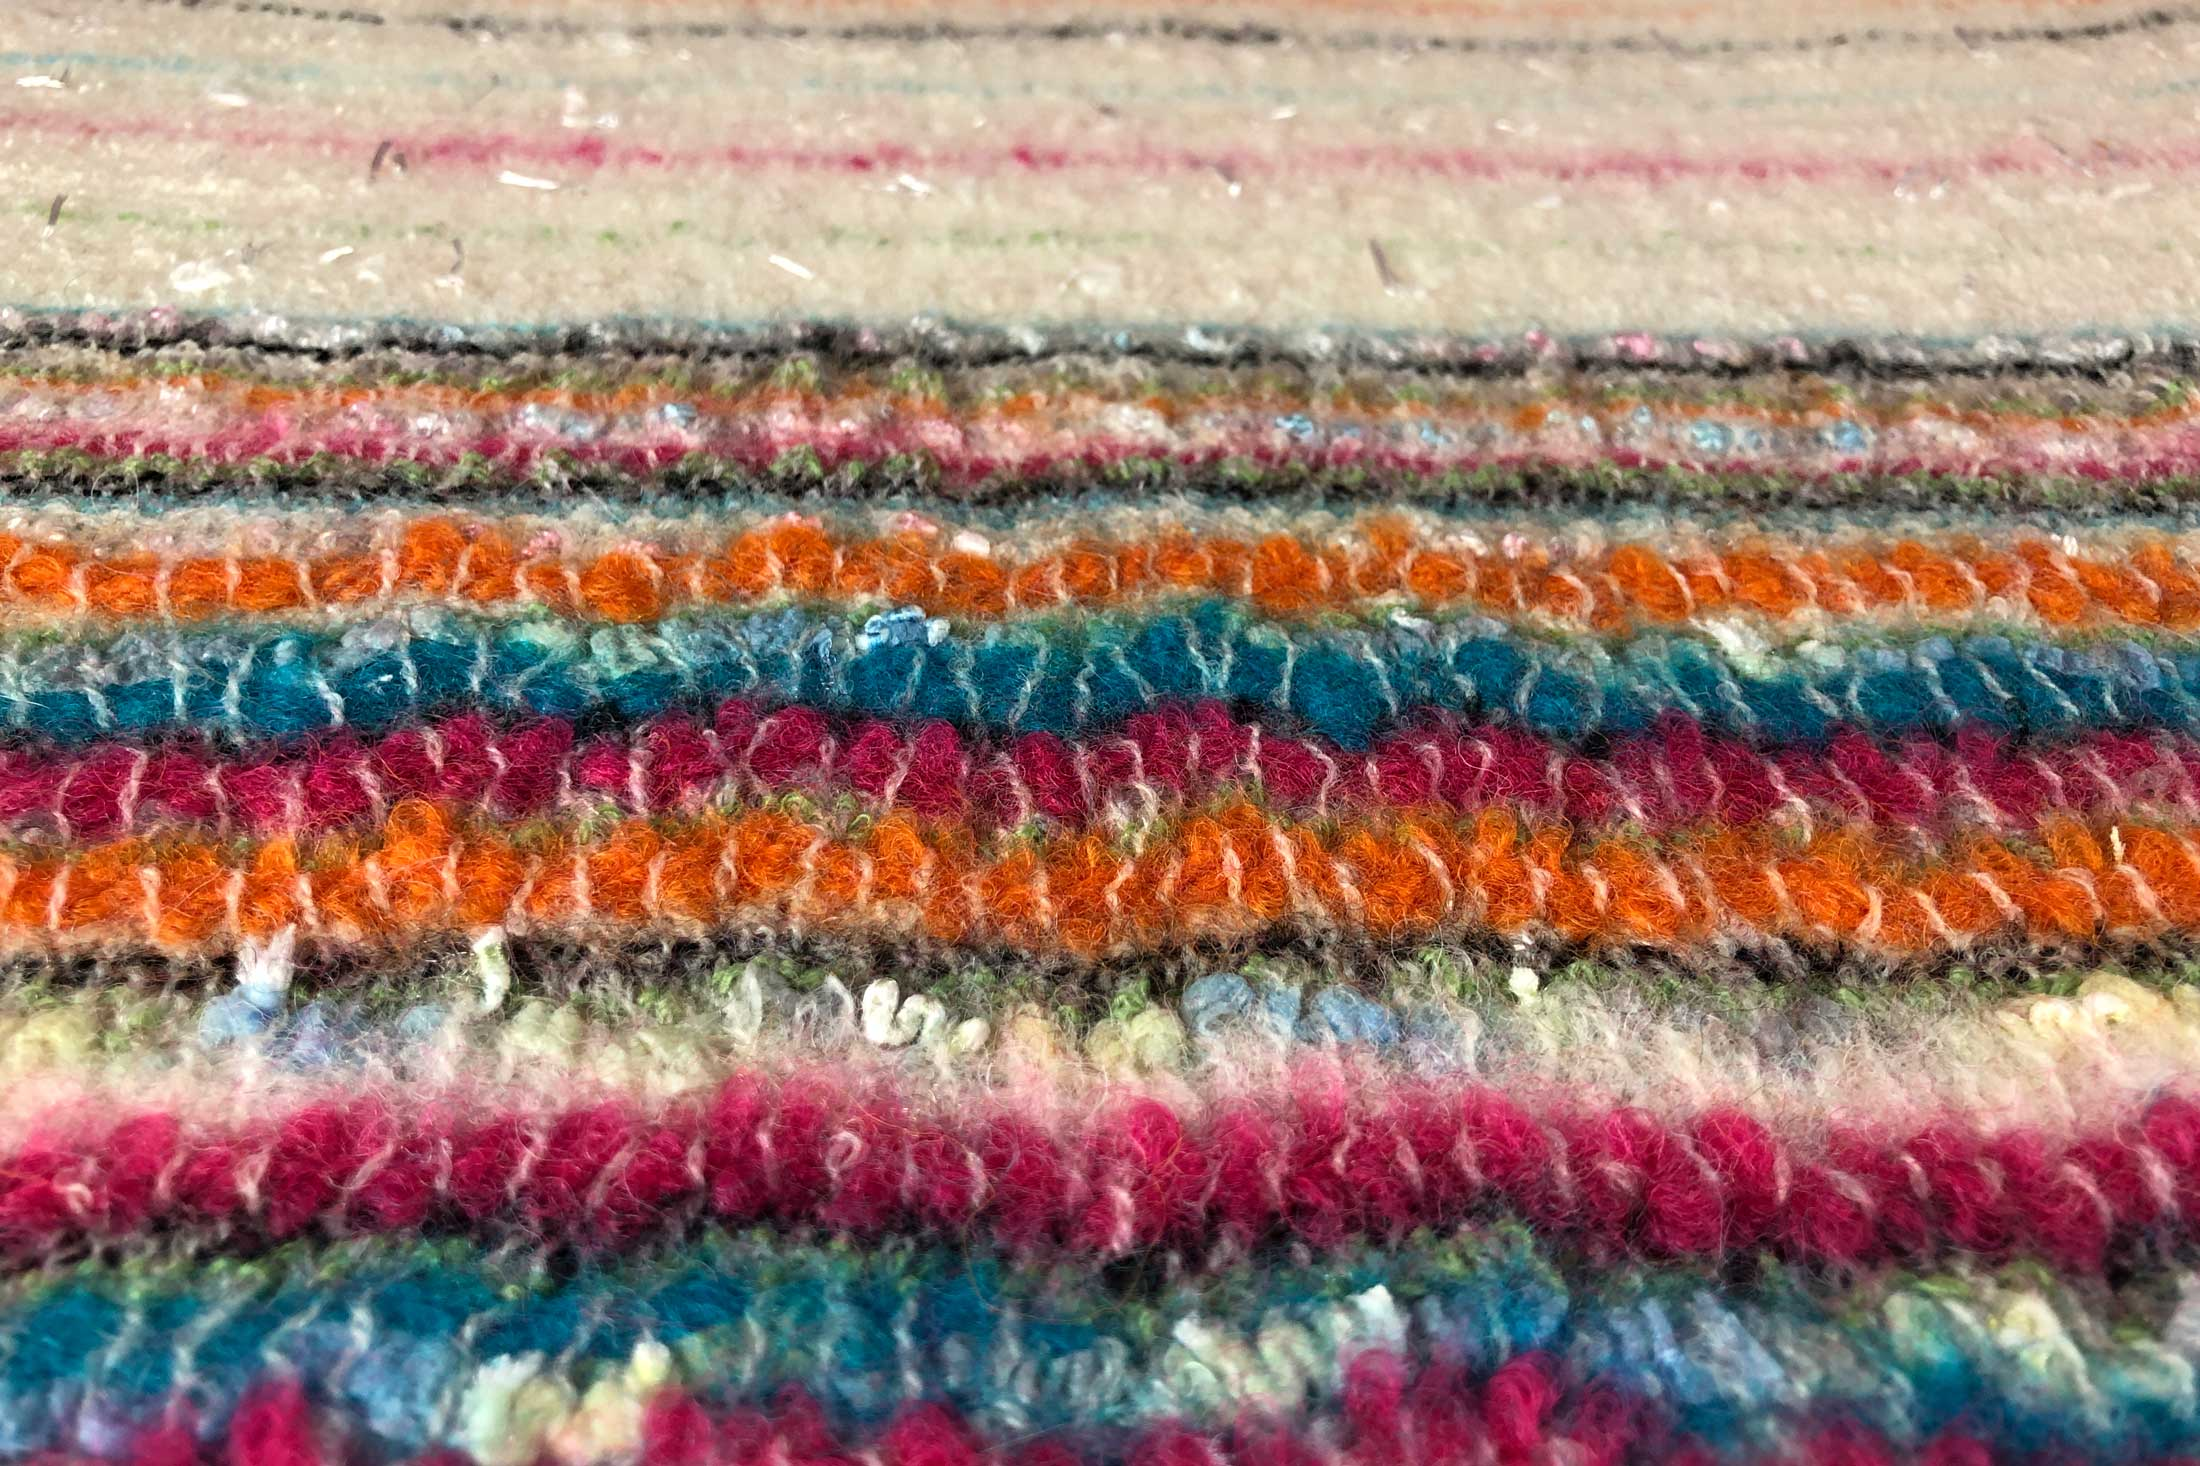 textile design hand weaving colorful